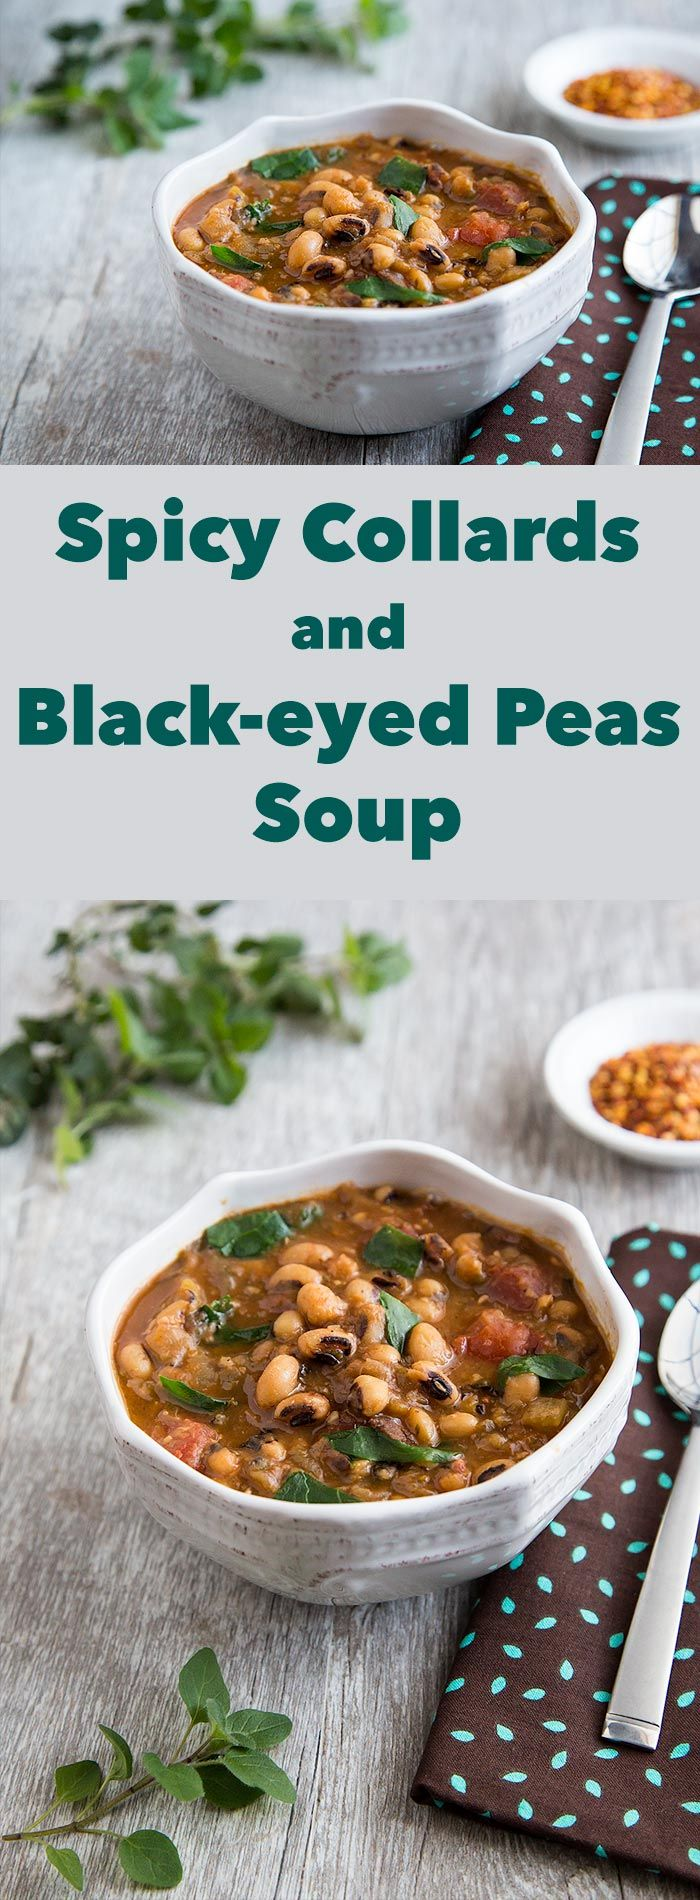 This low-fat, vegan soup can be made in the Instant Pot or pressure cooker or in any old pot on your stove. Delicious and healthy!